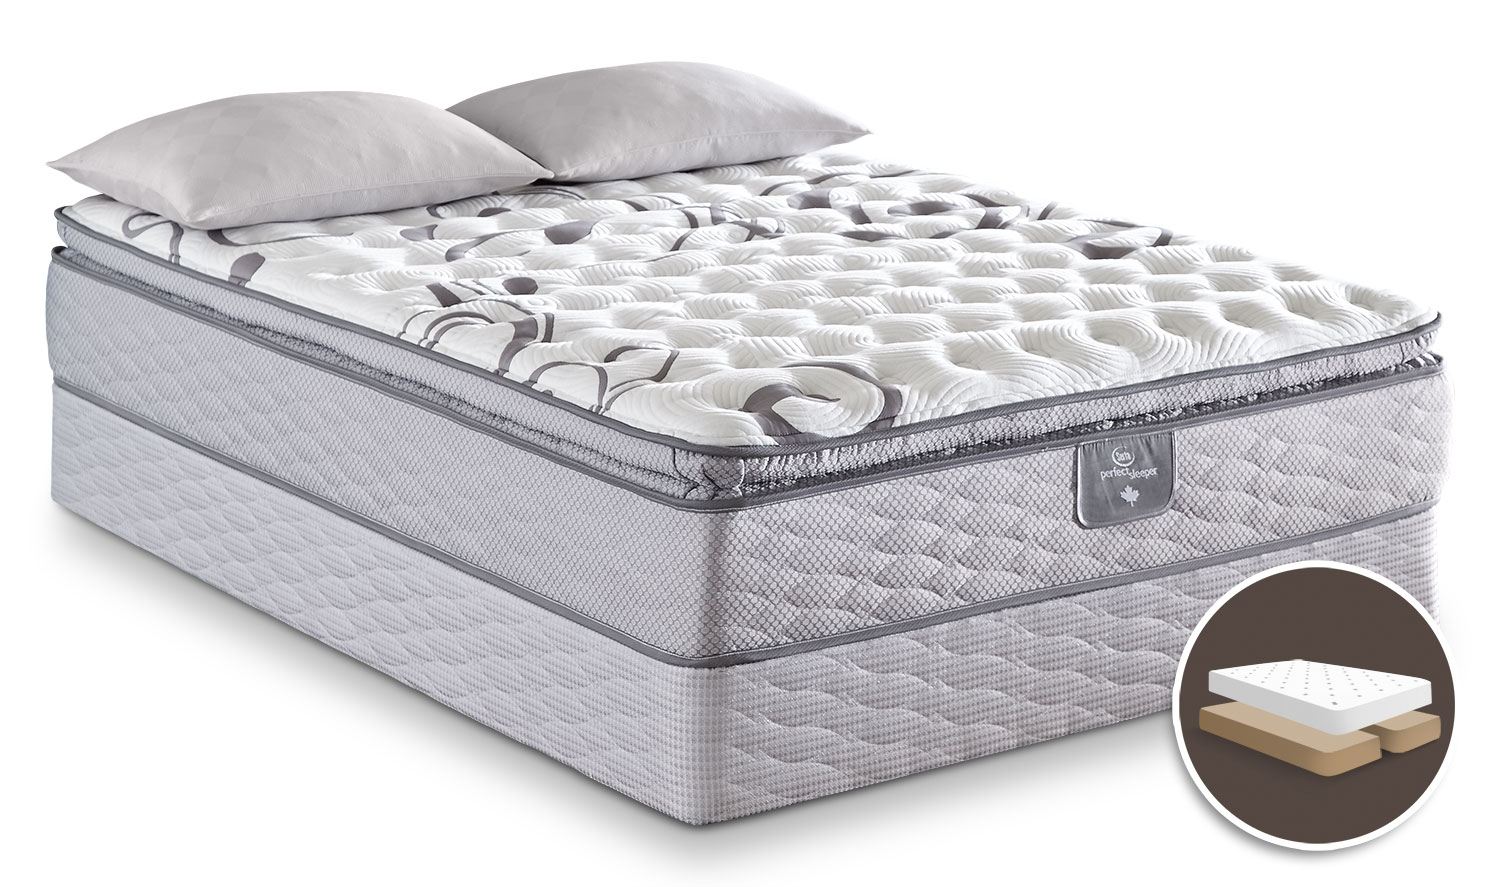 Mattresses and Bedding - Serta Perfect Sleeper Valebridge Pillow-Top Firm Queen Mattress with Split Boxspring